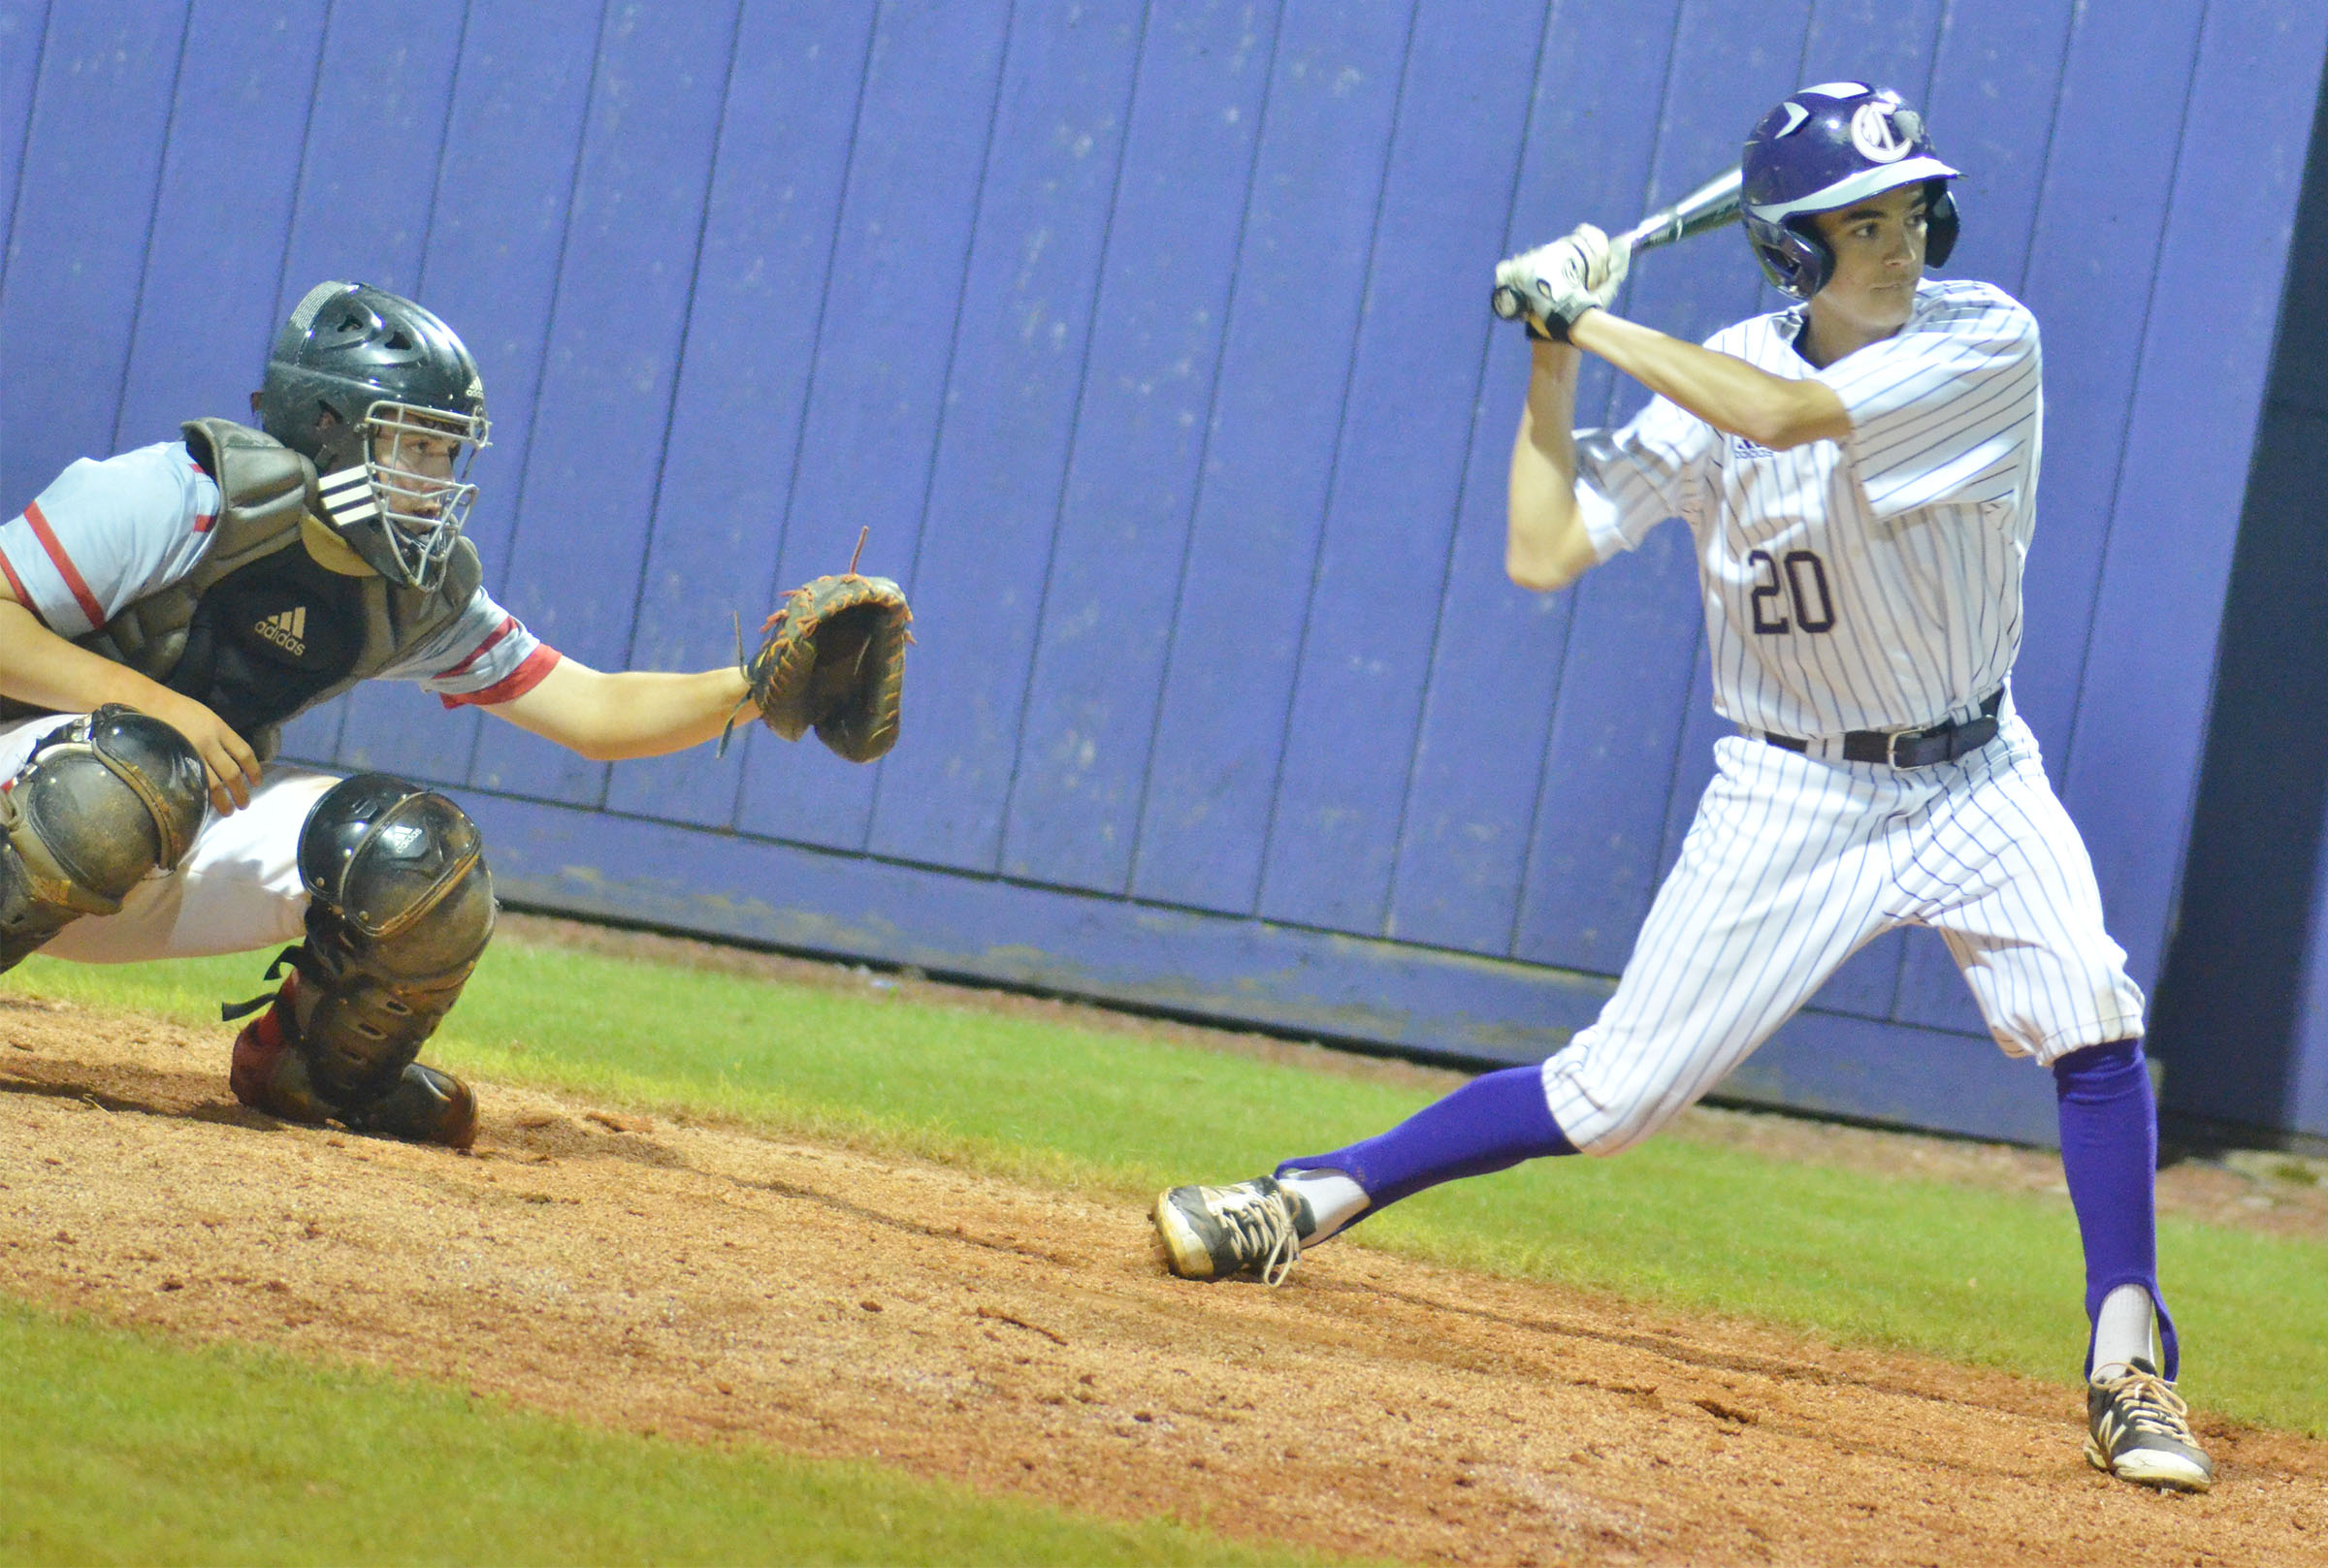 Campbellsville Middle School eighth-grader Kameron Smith bats.